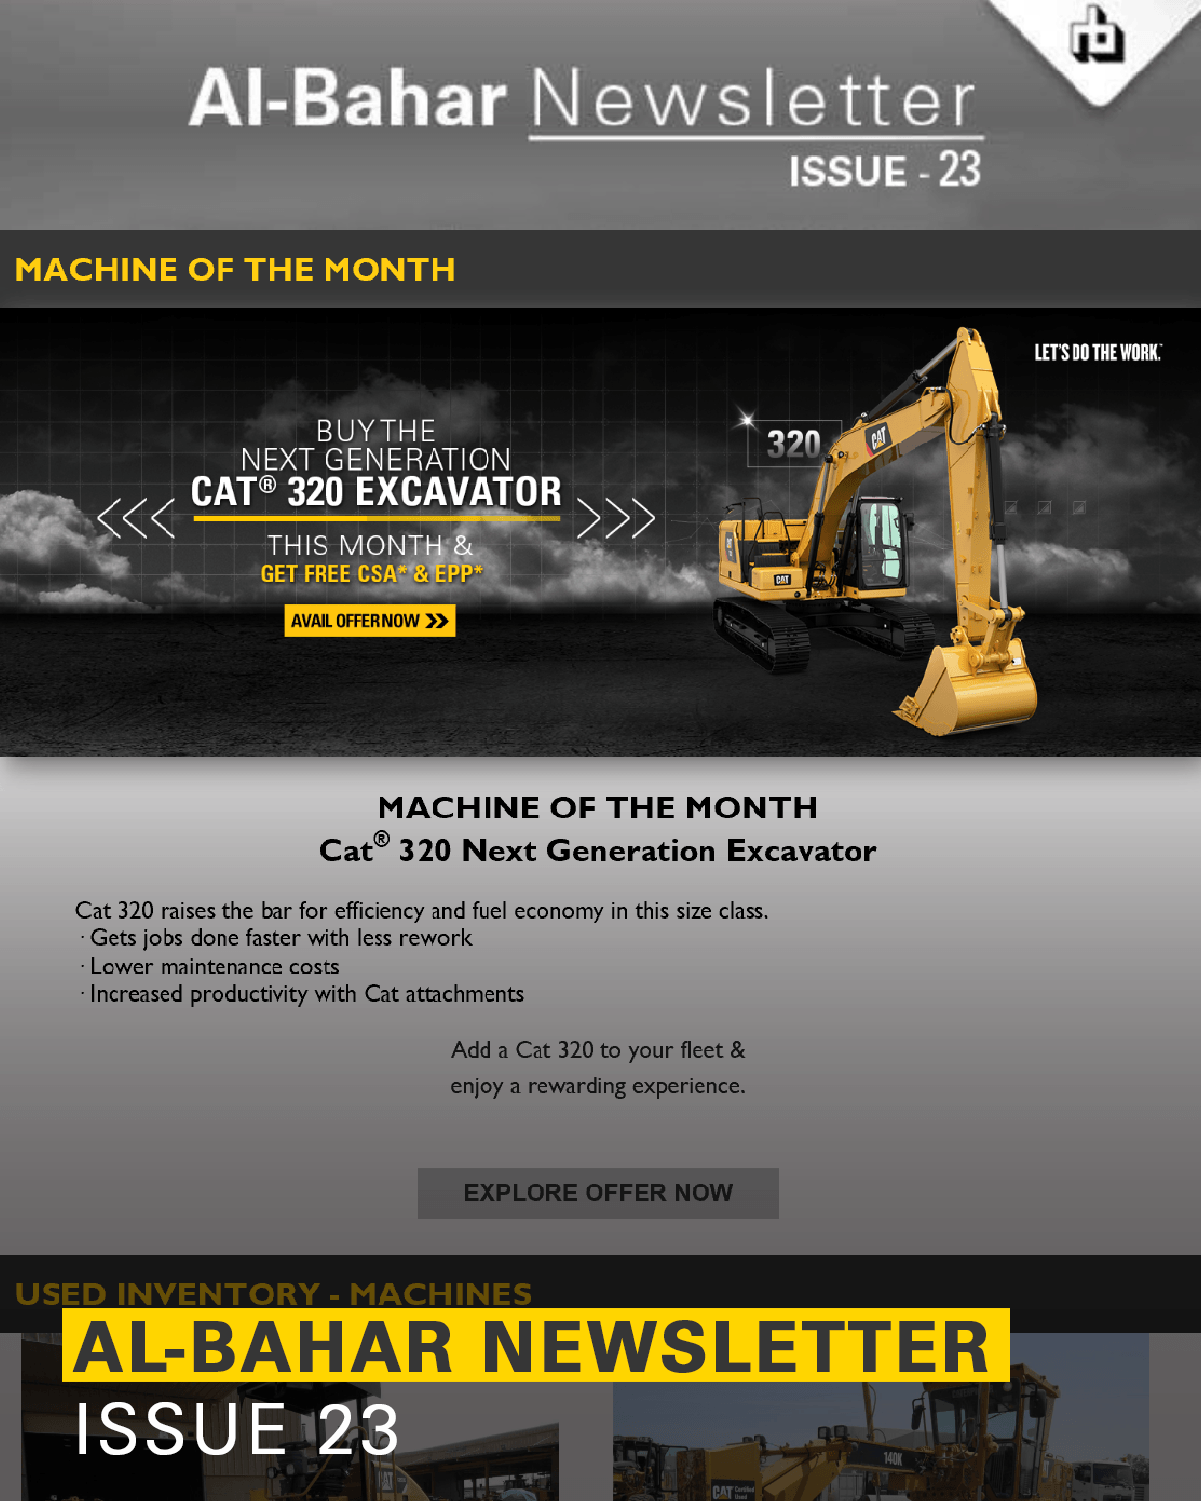 al-bahar-march-2019-newsletter-3